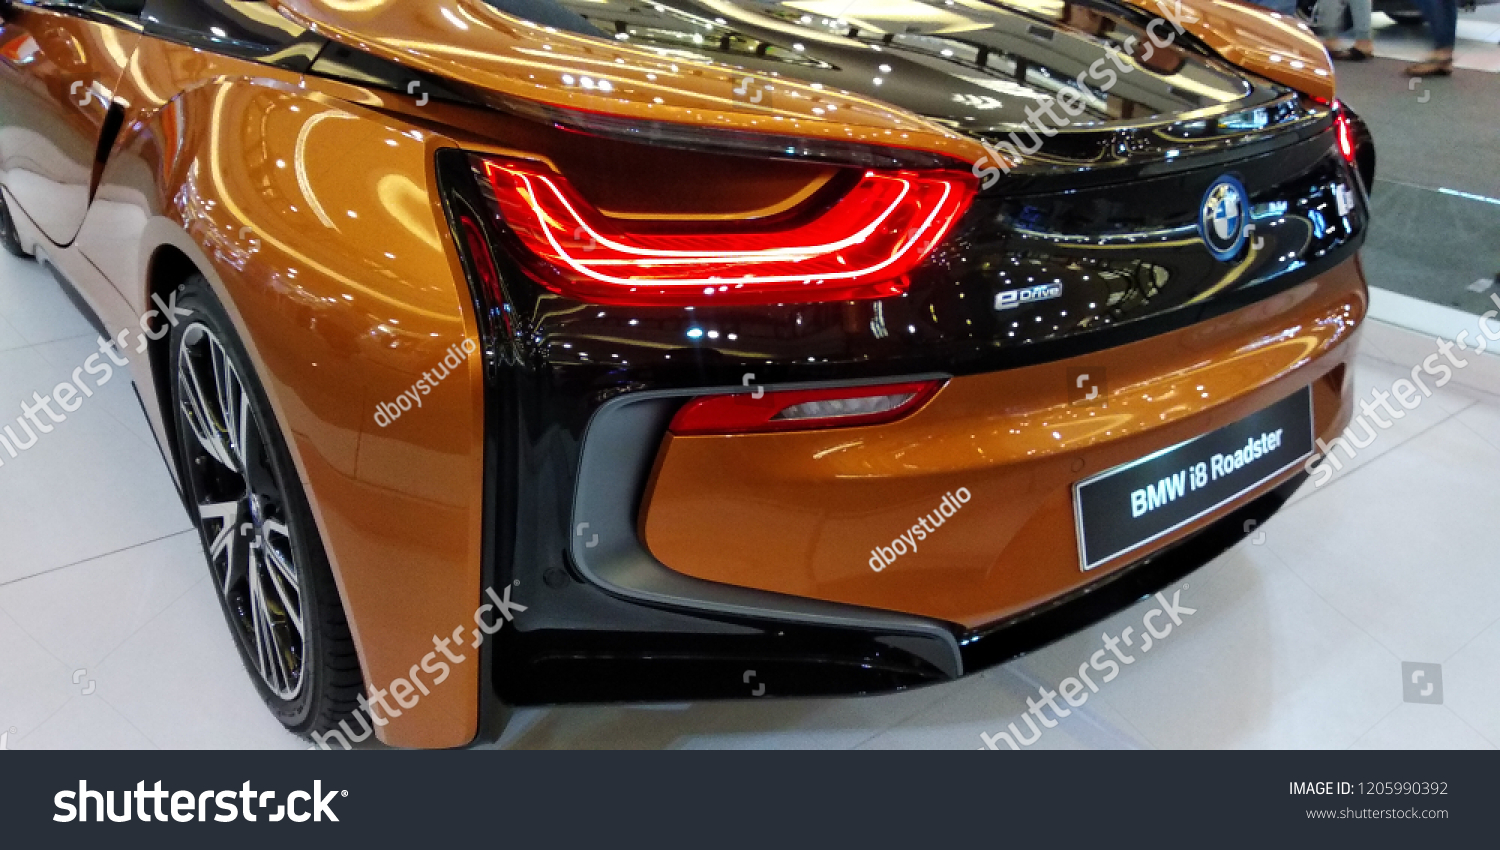 Malaysia Oktober 18 2018 Bmw I 8 Roadster Stock Photo Edit Now